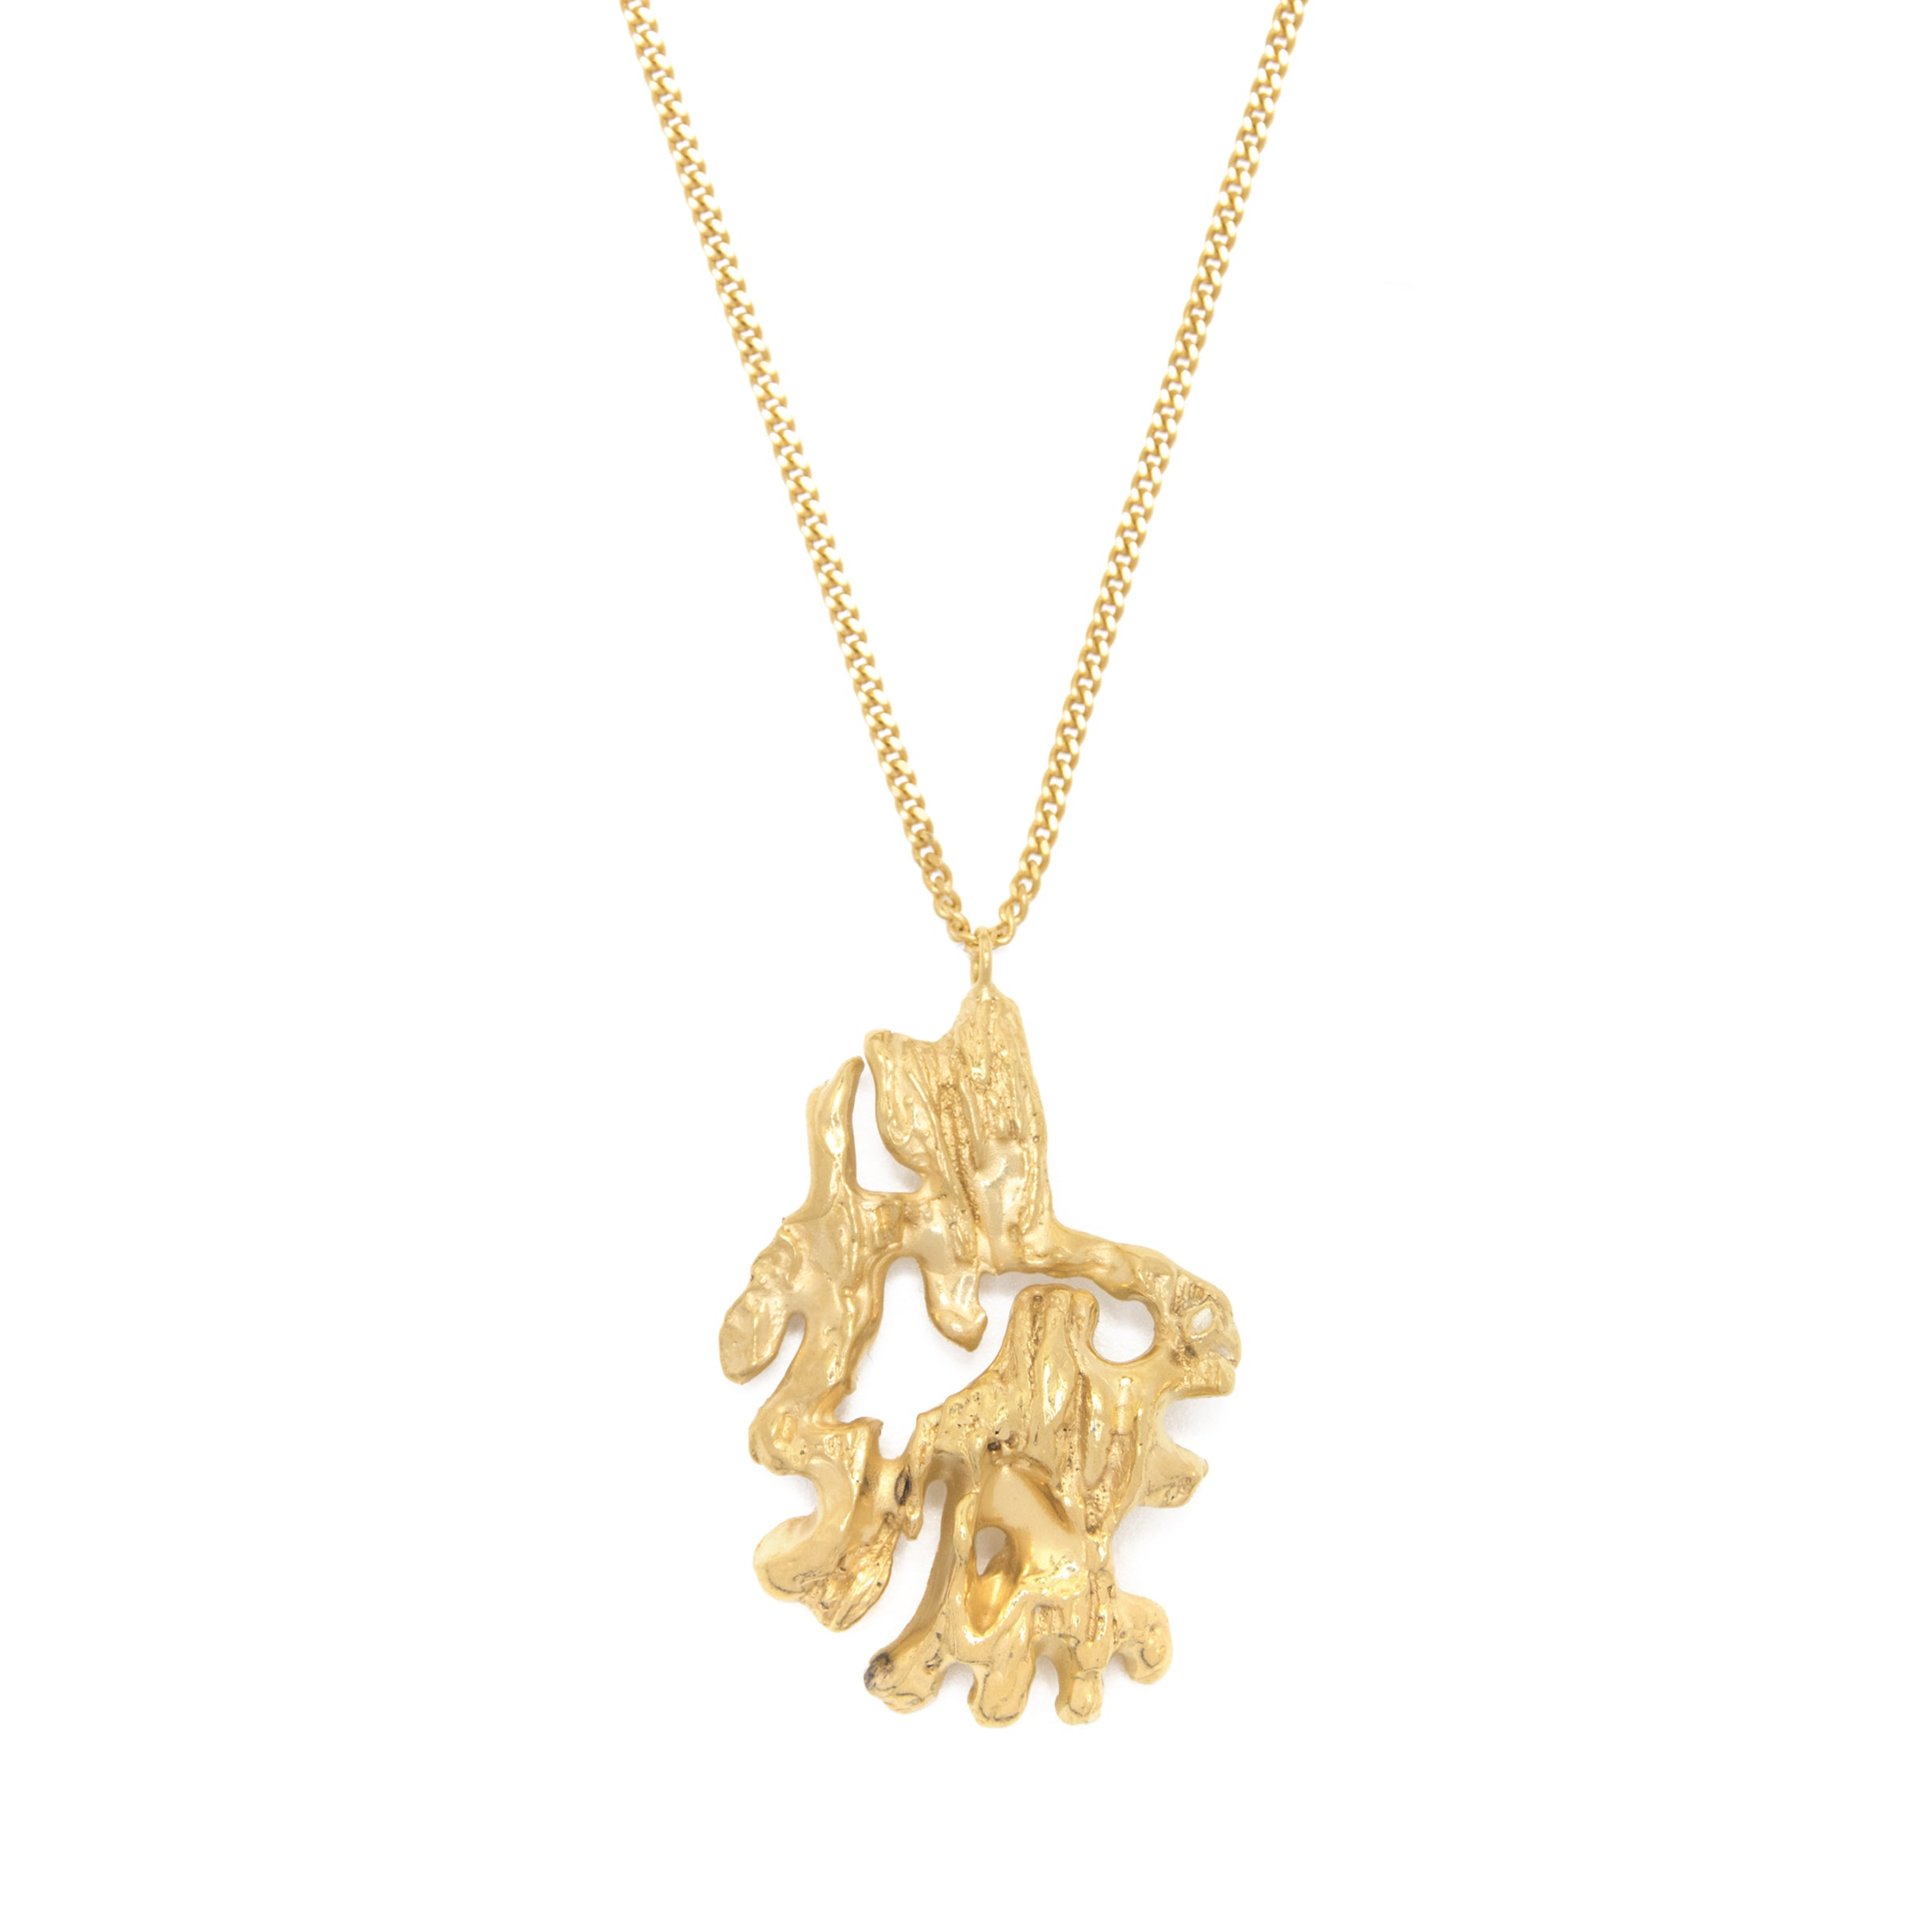 Monkey Chinese Zodiac Necklace